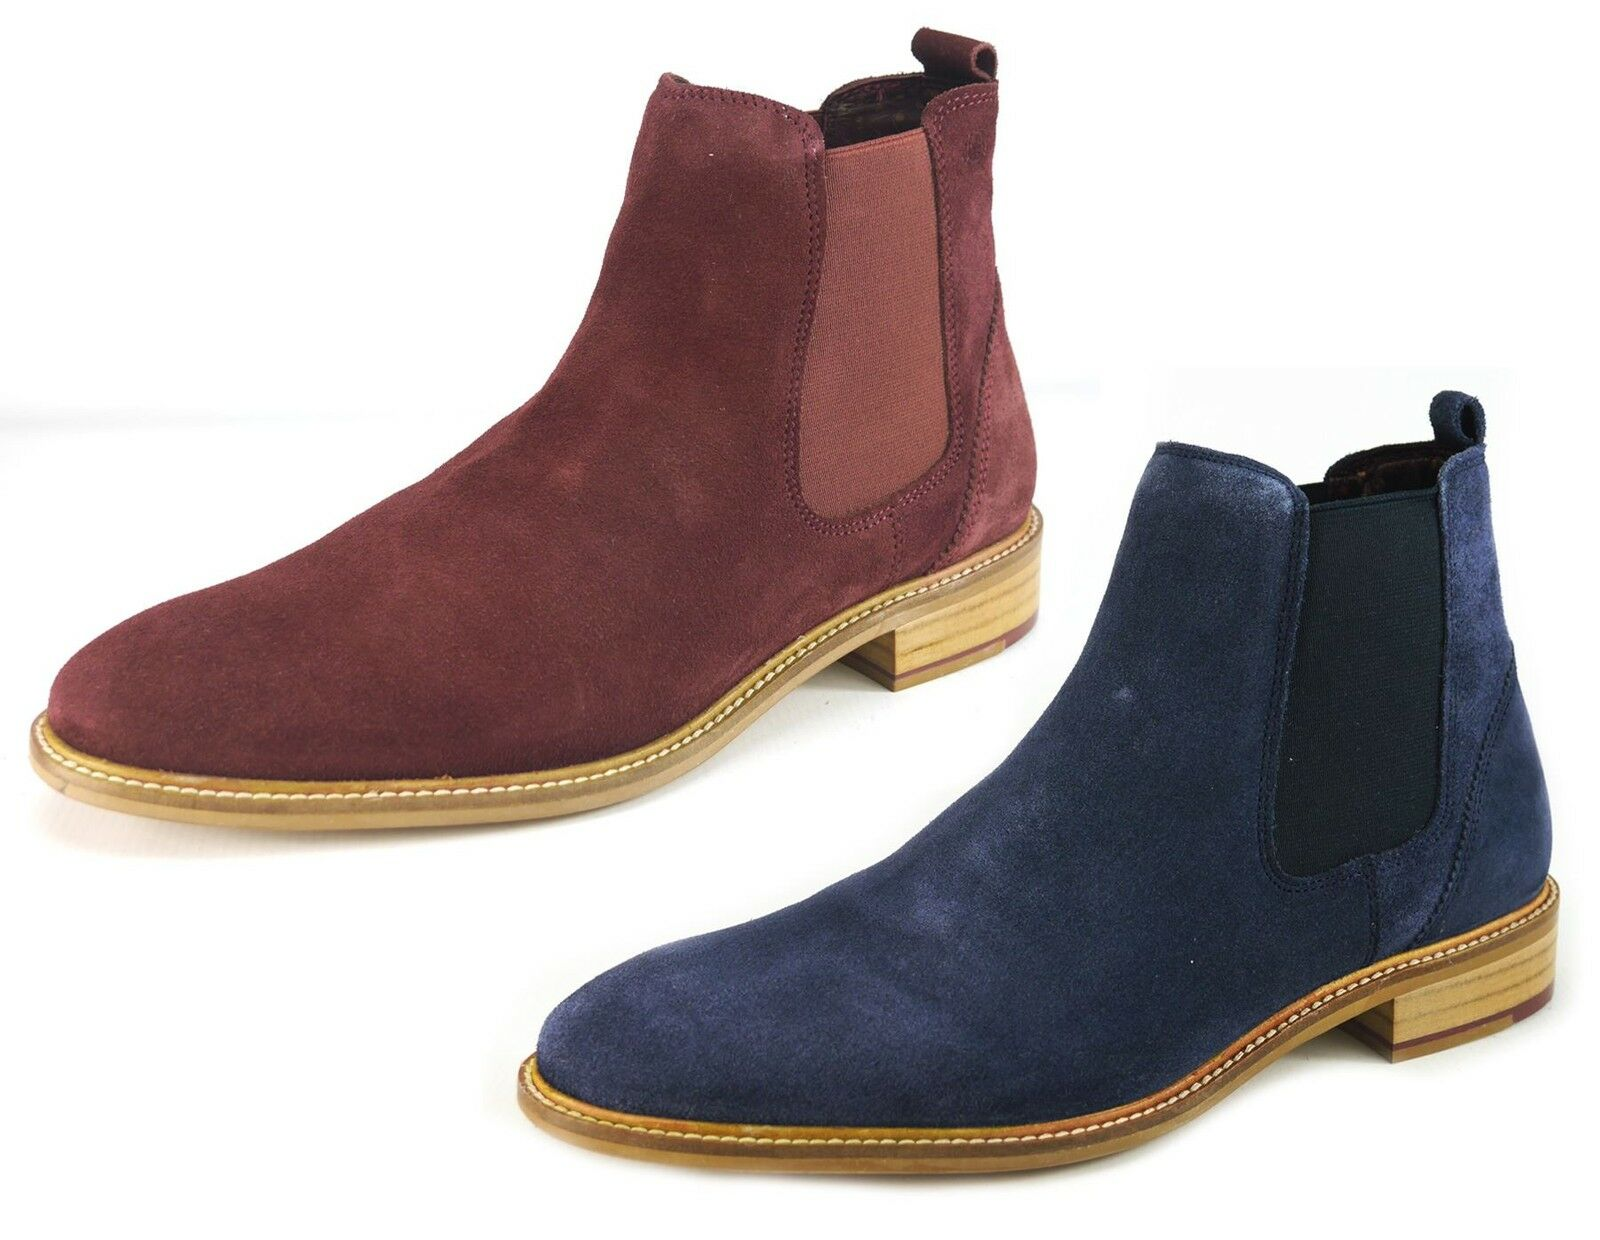 London Pull Brogues Hamilton in Pelle Scamosciata Alla Caviglia Chelsea Pull London On Navy FOLDABLE Borgogna c4fe4c